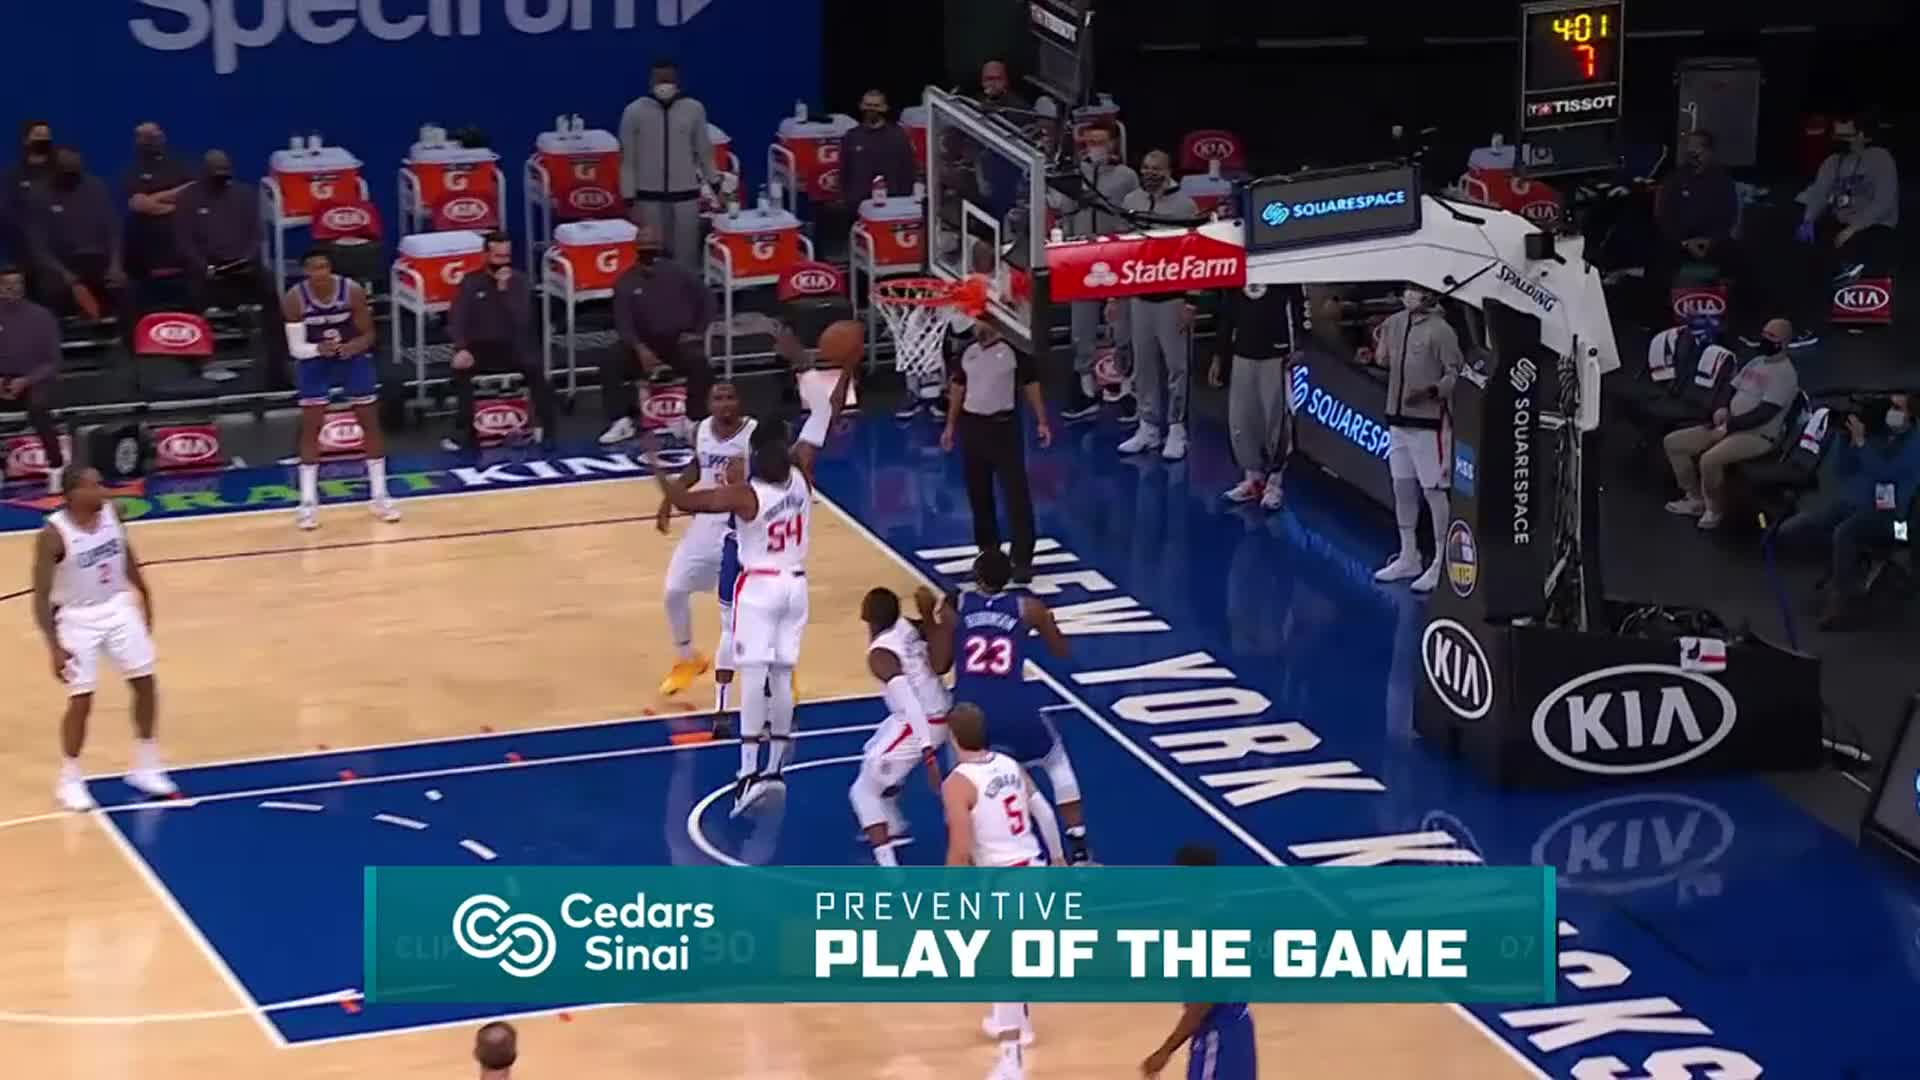 Cedars-Sinai Preventive Play of the Game | Clippers vs Knicks (1.31.21)